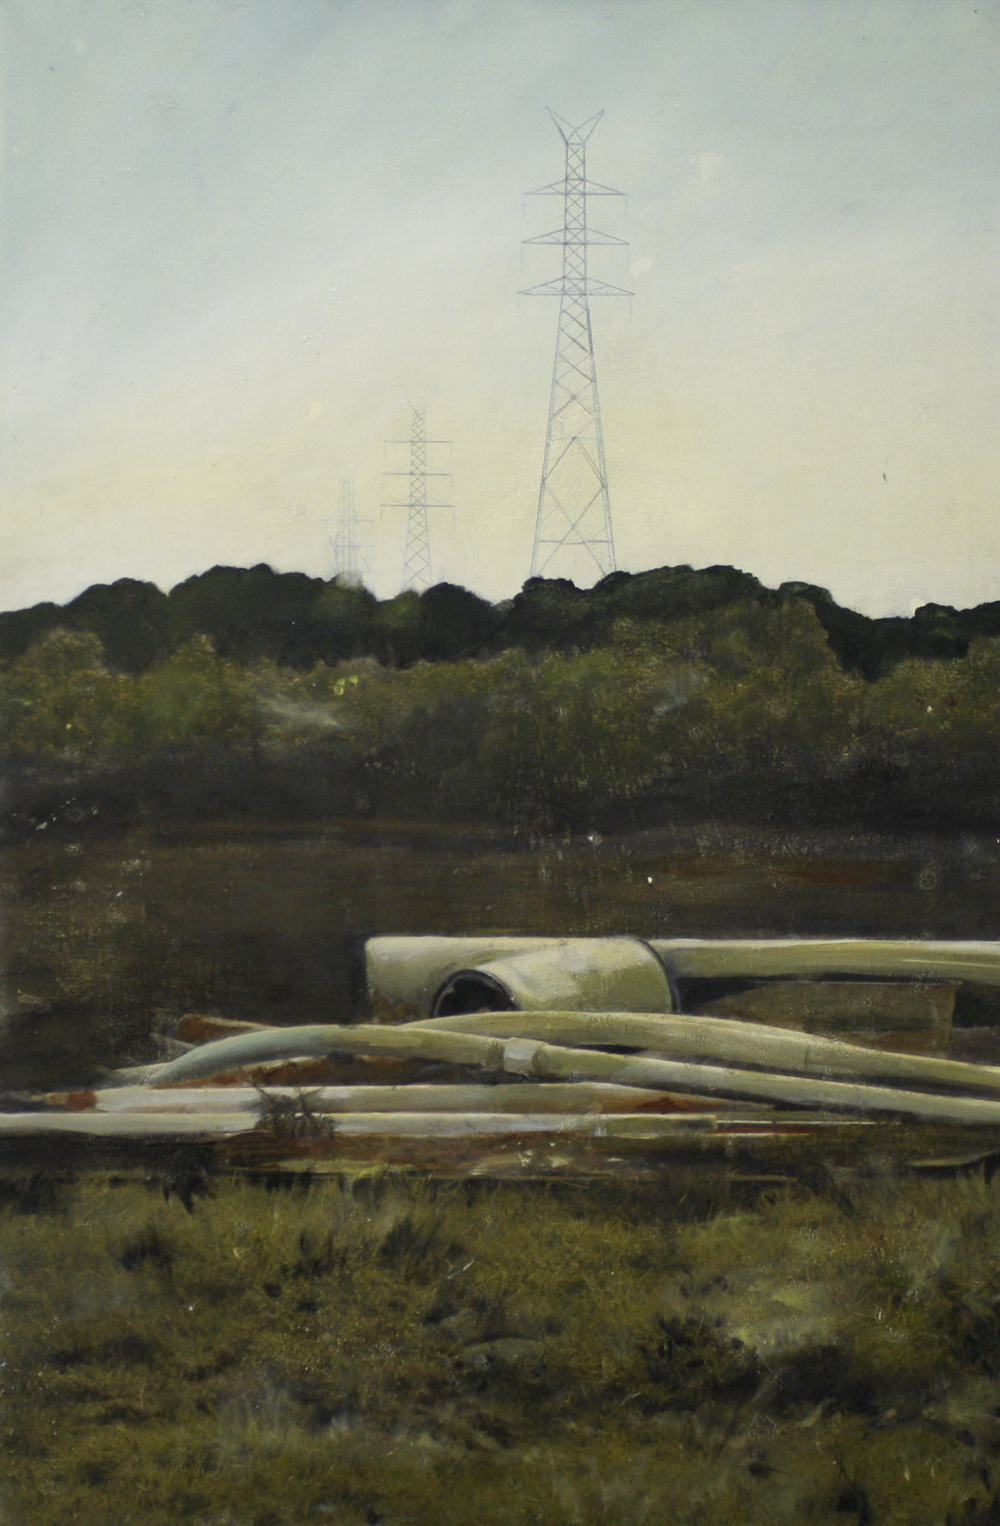 Edgeland 4    2012, oil on linen  50 x 76 cm